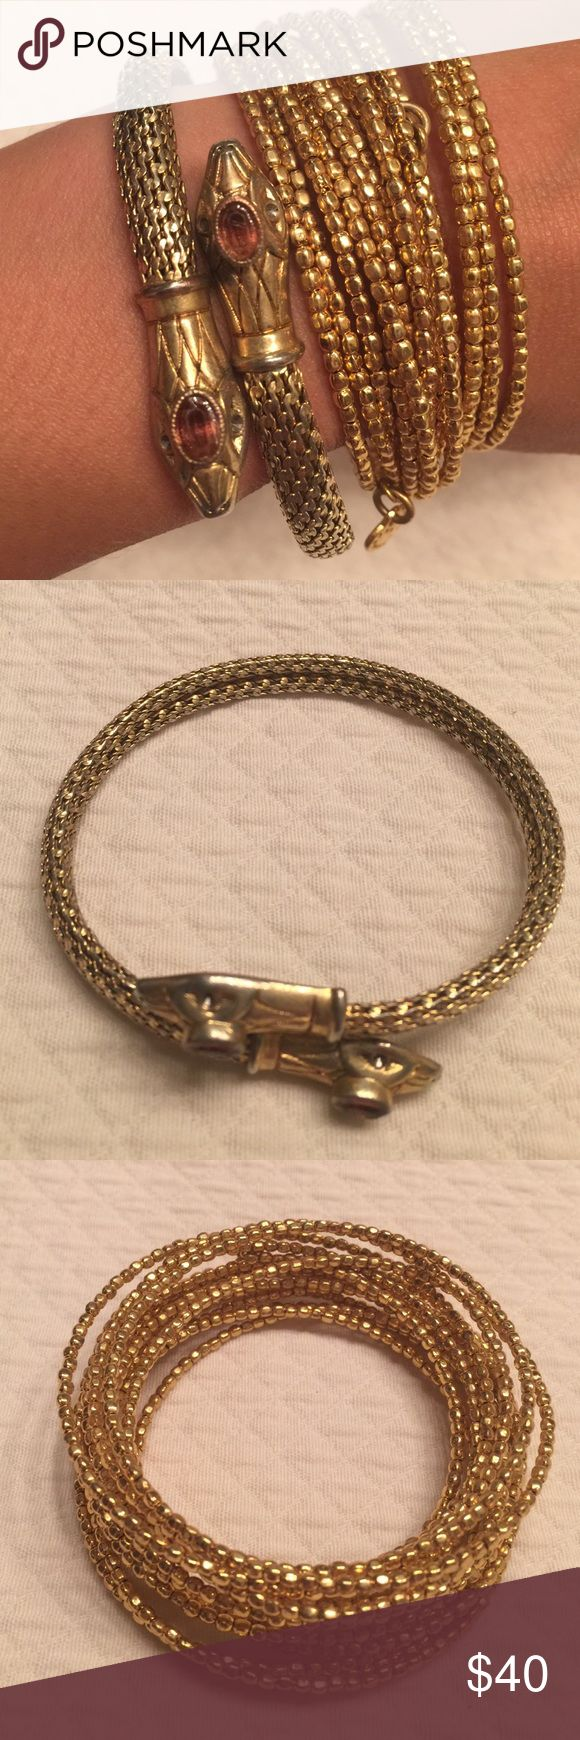 Stella and Dot bracelets Stella and Dot brackets in gold.  Perfect for layering.  Snake heads have a bit discoloration but hardly noticeable.  Priced accordingly, Stella & Dot Jewelry Bracelets